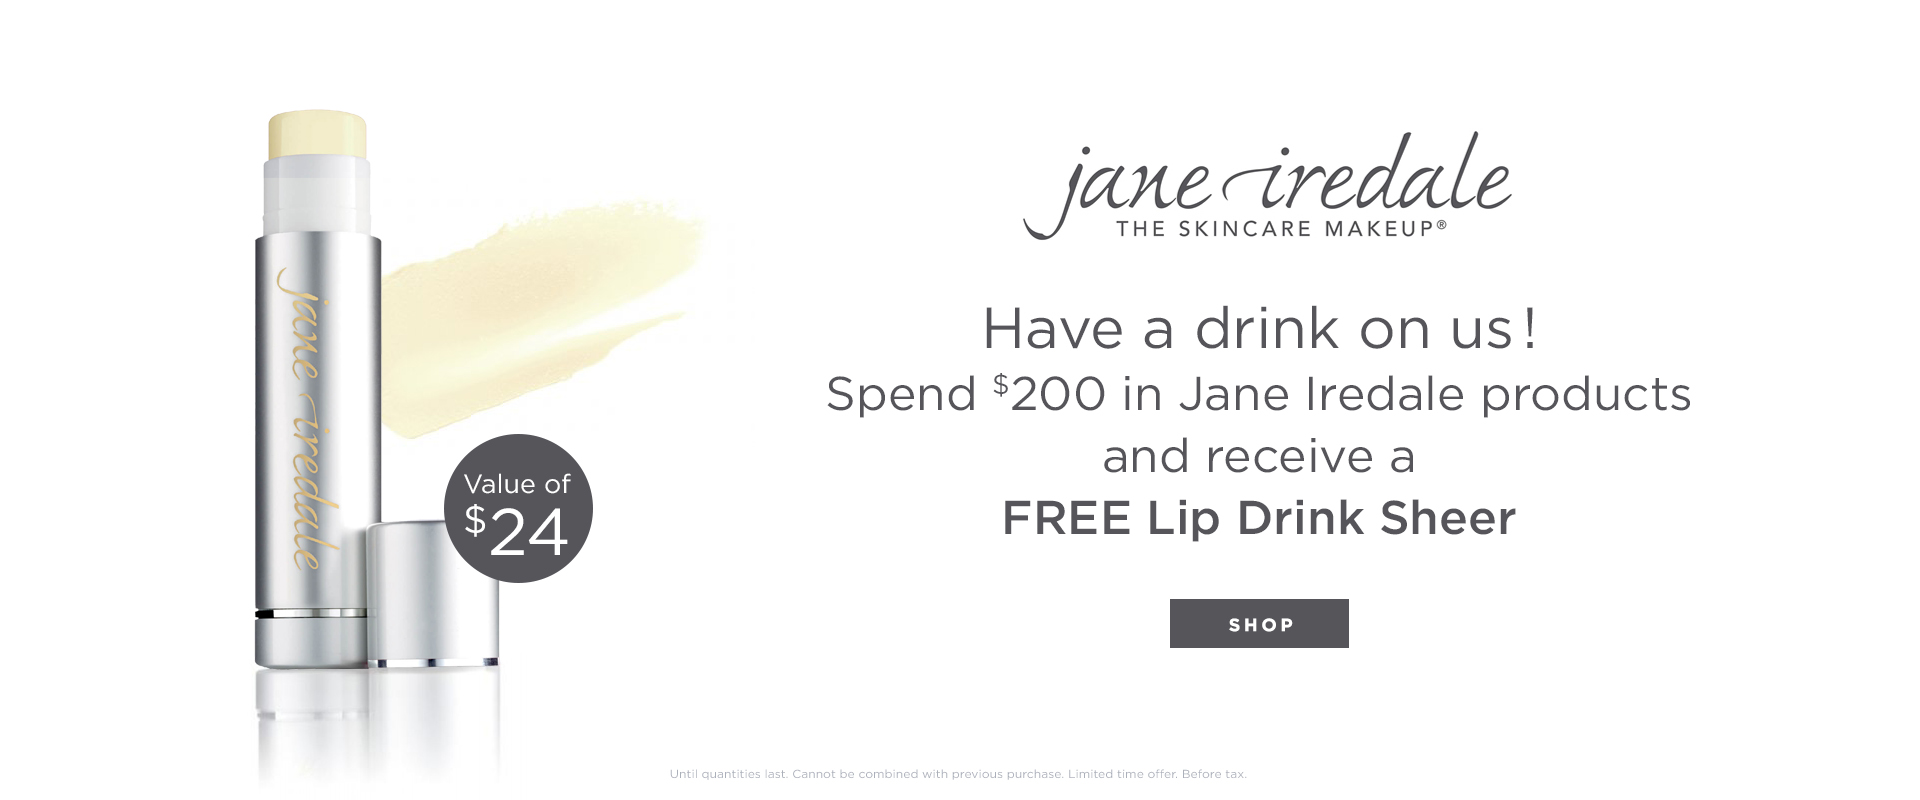 Receive a FREE Lip Drink in Sheer when you purchase $200 or more of Jane Iredale products.